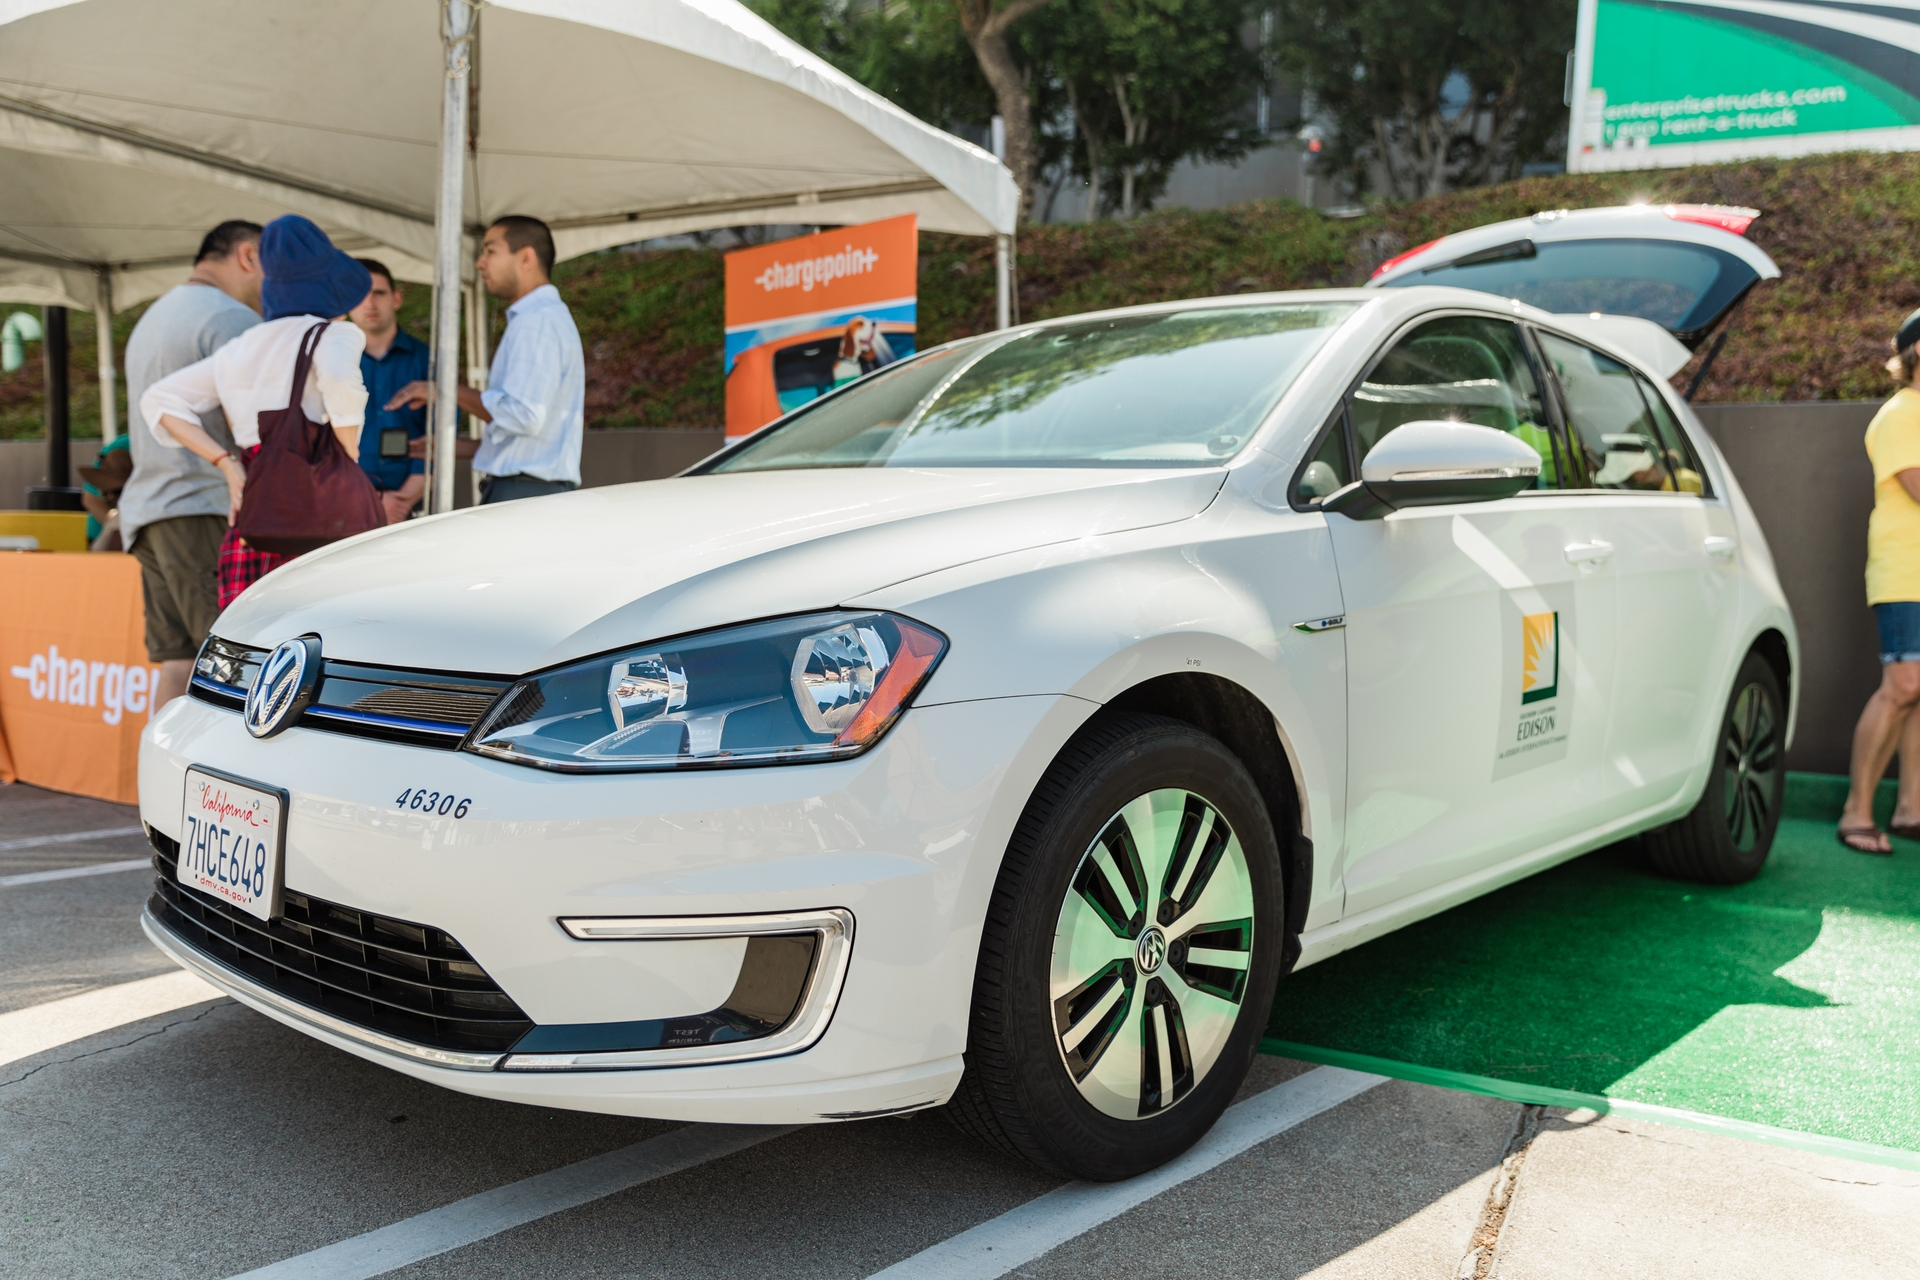 At Charge Up LA!, attendees will be able to test drive the latest model electric cars and talk to EV owners about their emission-free driving experience.